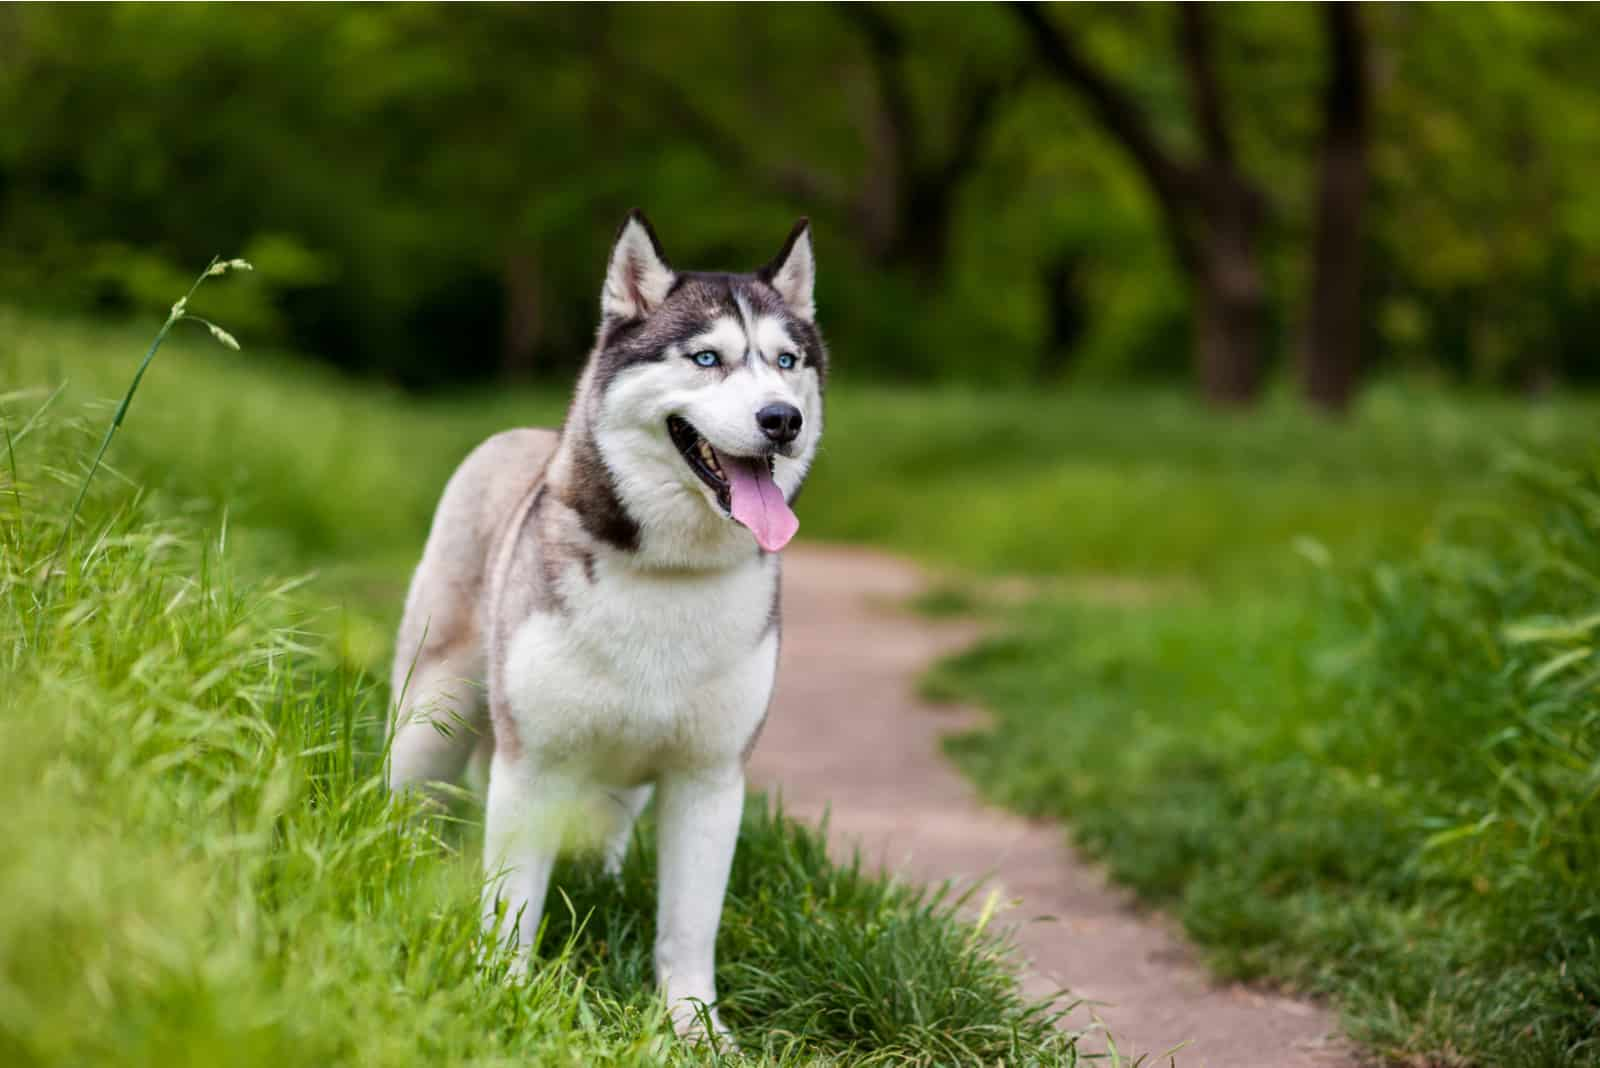 husky dog with blue eyes stands and looks ahead